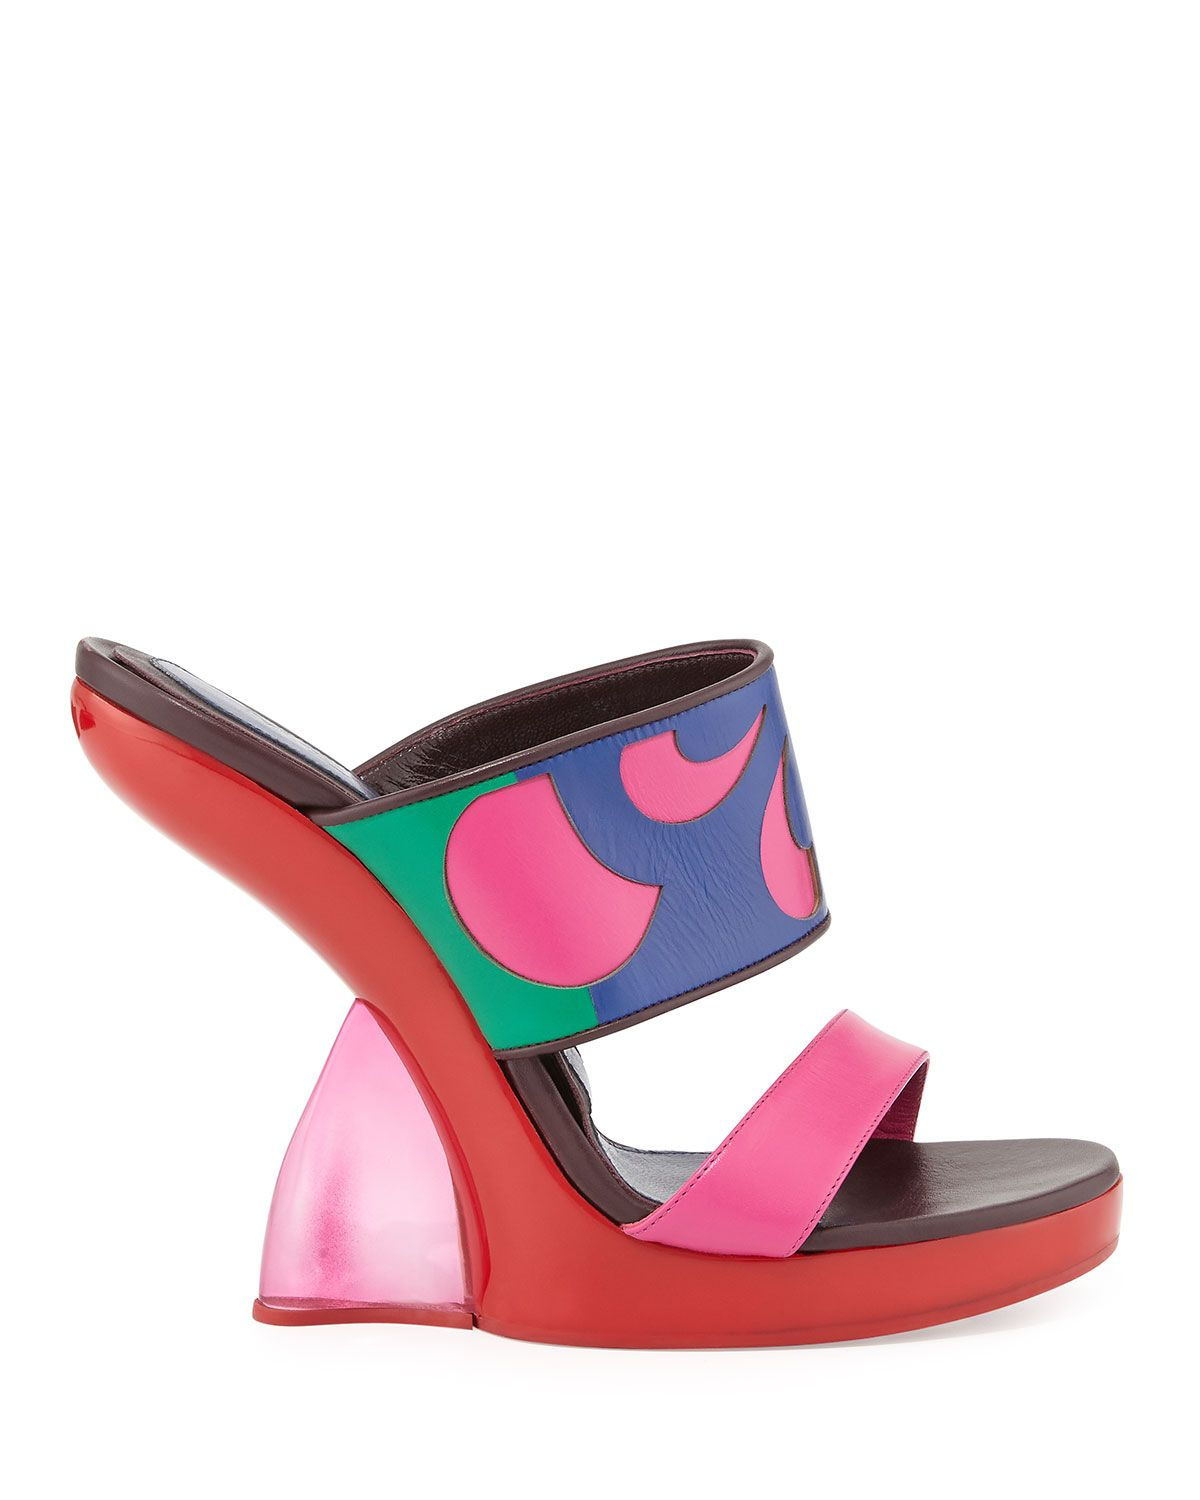 "Alexander McQueen Double-Band Wedge Slide Sandal, $1,720&#x3B; <a href=""http://www.bergdorfgoodman.com/Alexander-McQueen-Double-Band-Wedge-Slide-Sandal-Fuchsia-Pink/prod104080031_cat223300__/p.prod?icid=&amp&#x3B;searchType=EndecaDrivenCat&amp&#x3B;rte=%2Fcategory.service%3FitemId%3Dcat223300%26pageSize%3D120%26No%3D120%26Ns%3DPCS_SORT%26refin"">bergdorfgoodman.com</a>